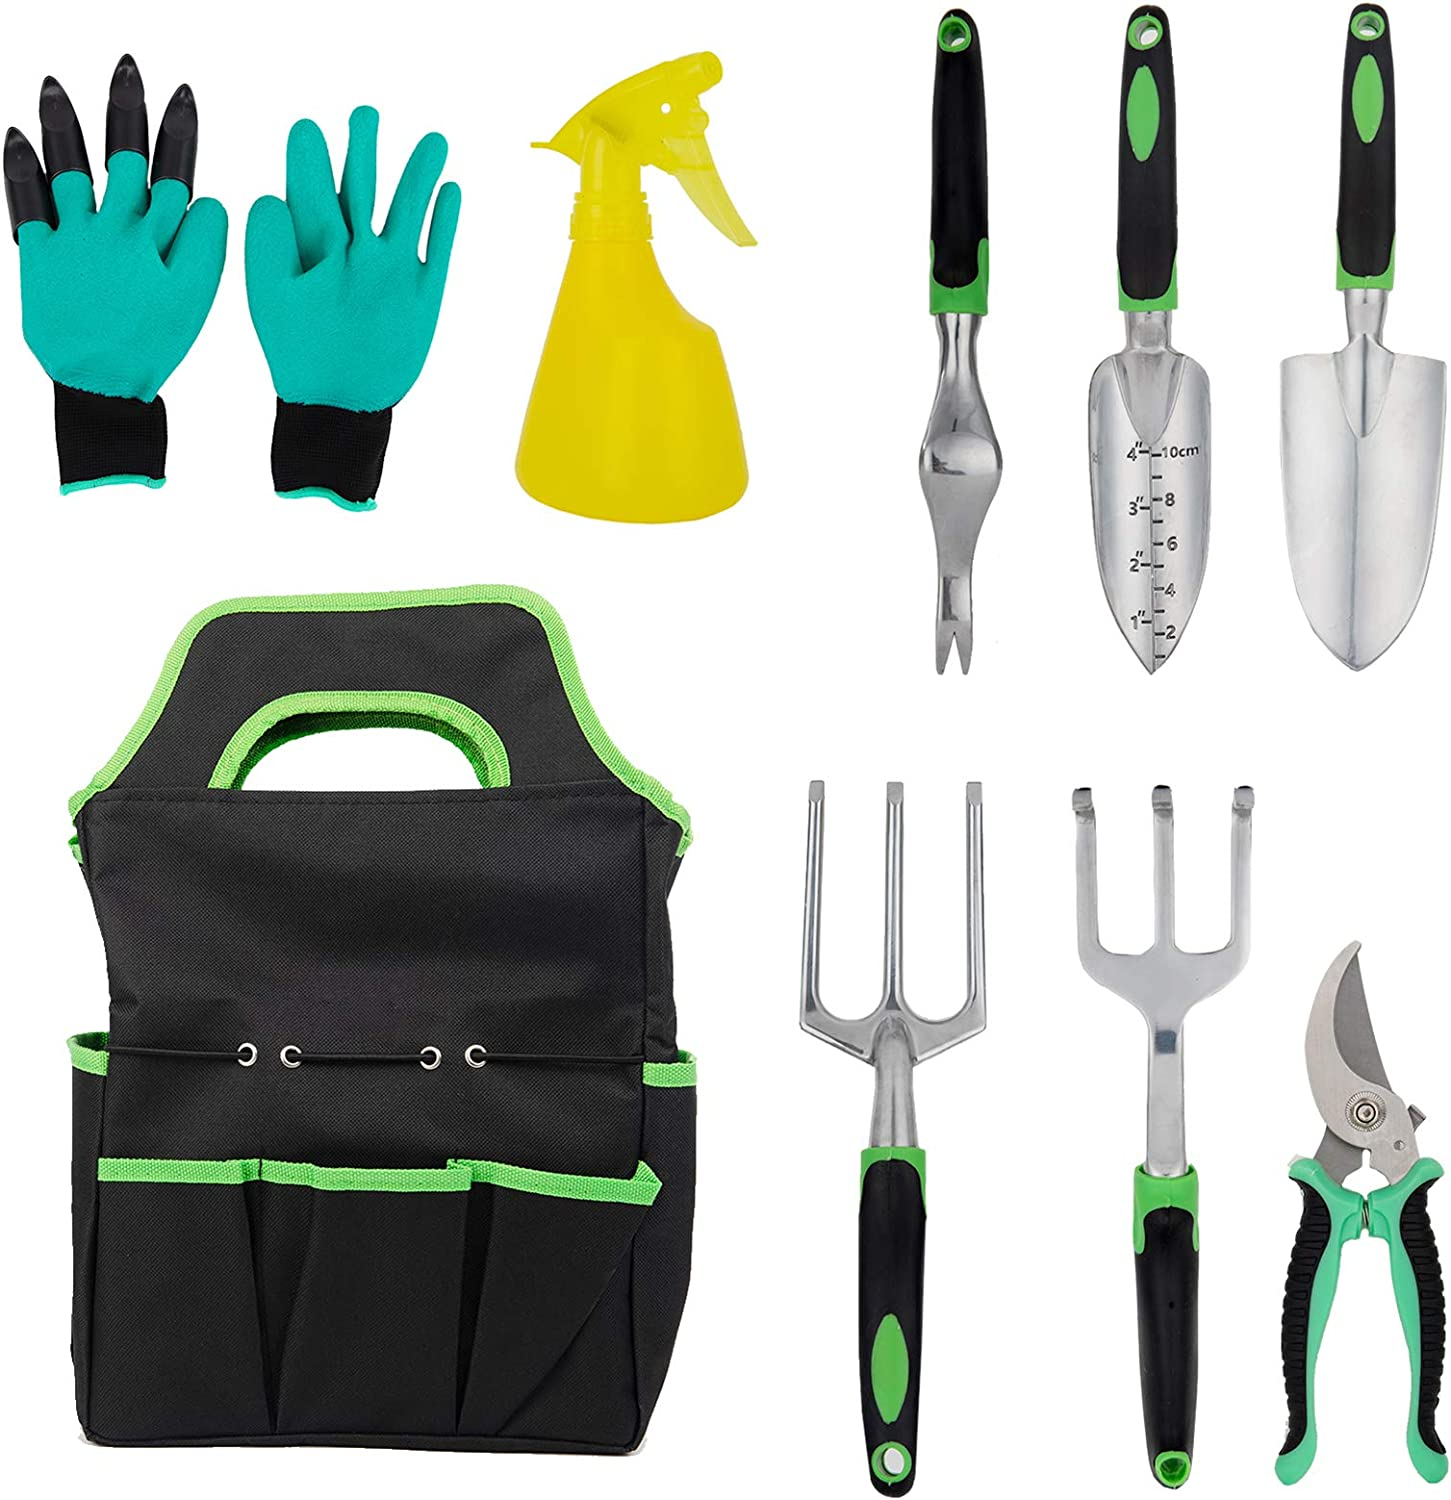 JADINIER 9Pcs Garden Tools Set, Extra Succulent Tools Set, Soft Rubberized Non-Slip Handle Hand Tools Kit with Garden Gloves and Storage Pocket, Aluminum Outdoor and Indoor Hand Tools Work Set